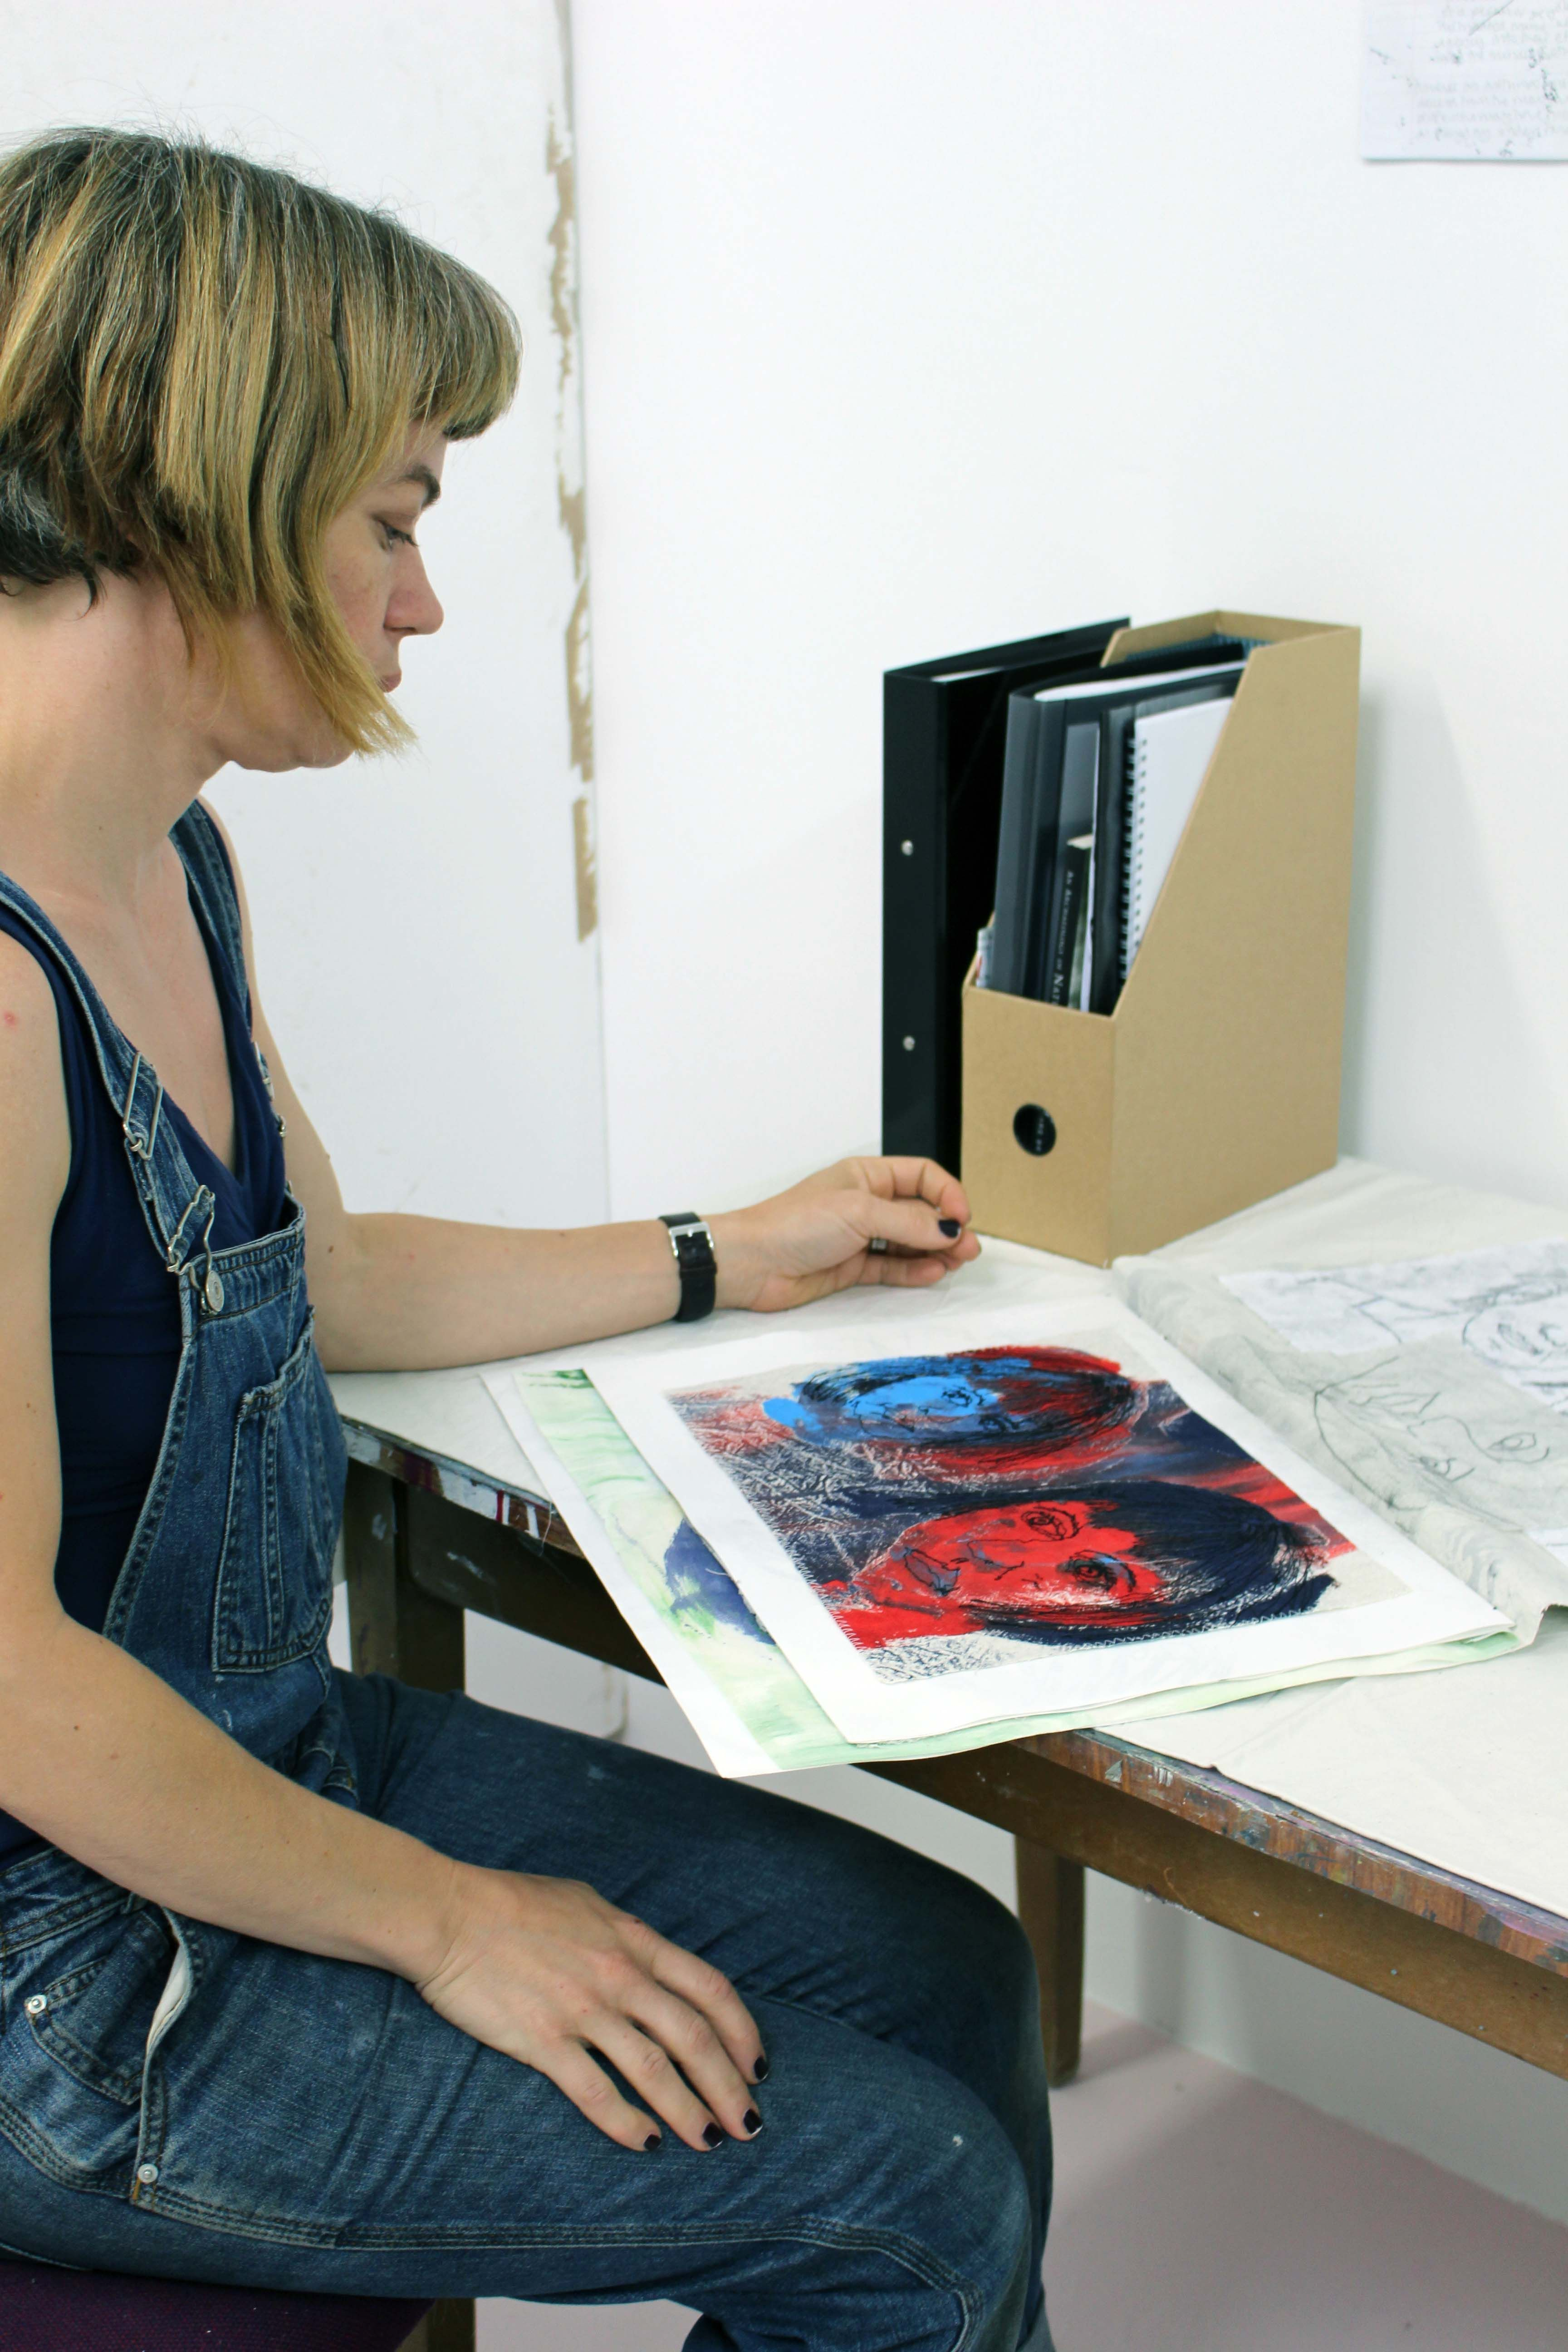 As part of their final assessment diploma in art and